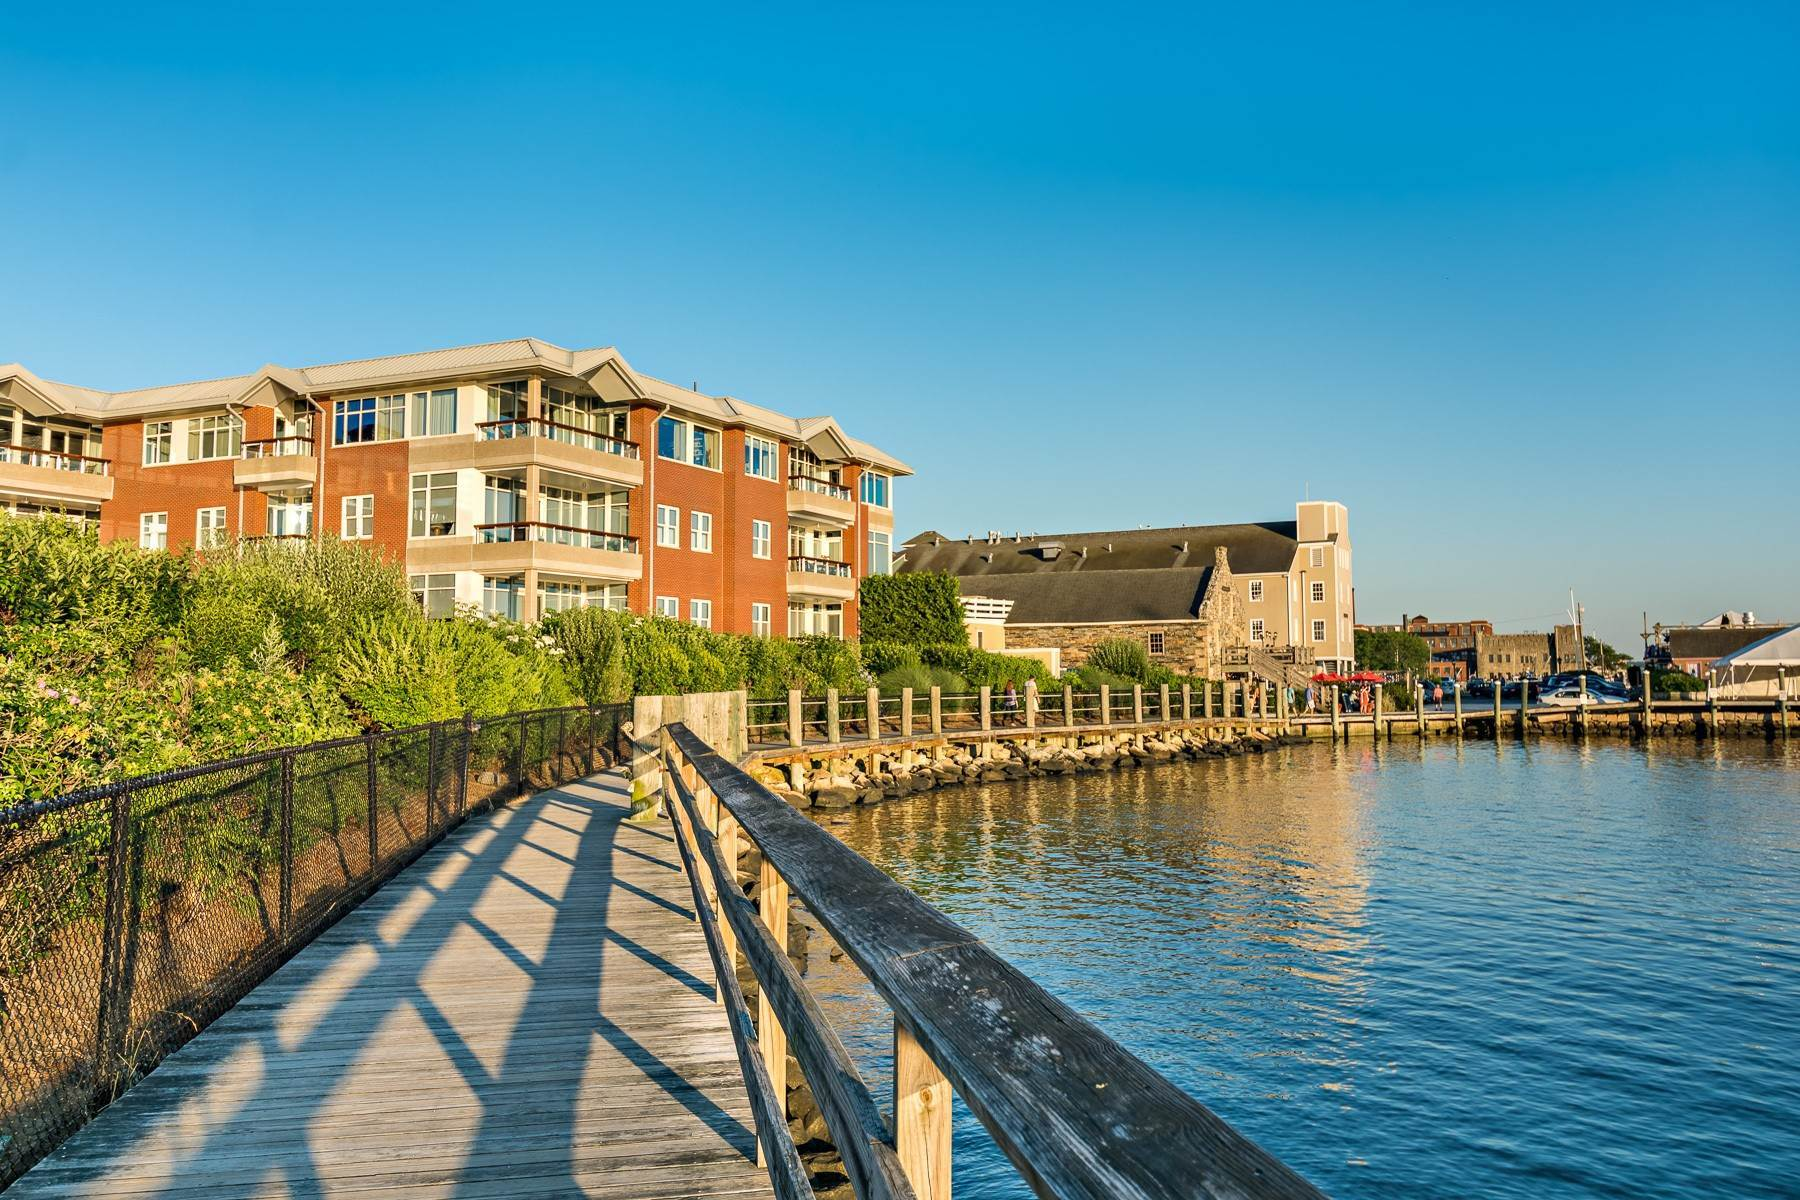 7. Condominiums for Sale at 341 THAMES ST, UNIT#303S, 303S Bristol, Rhode Island 02809 United States